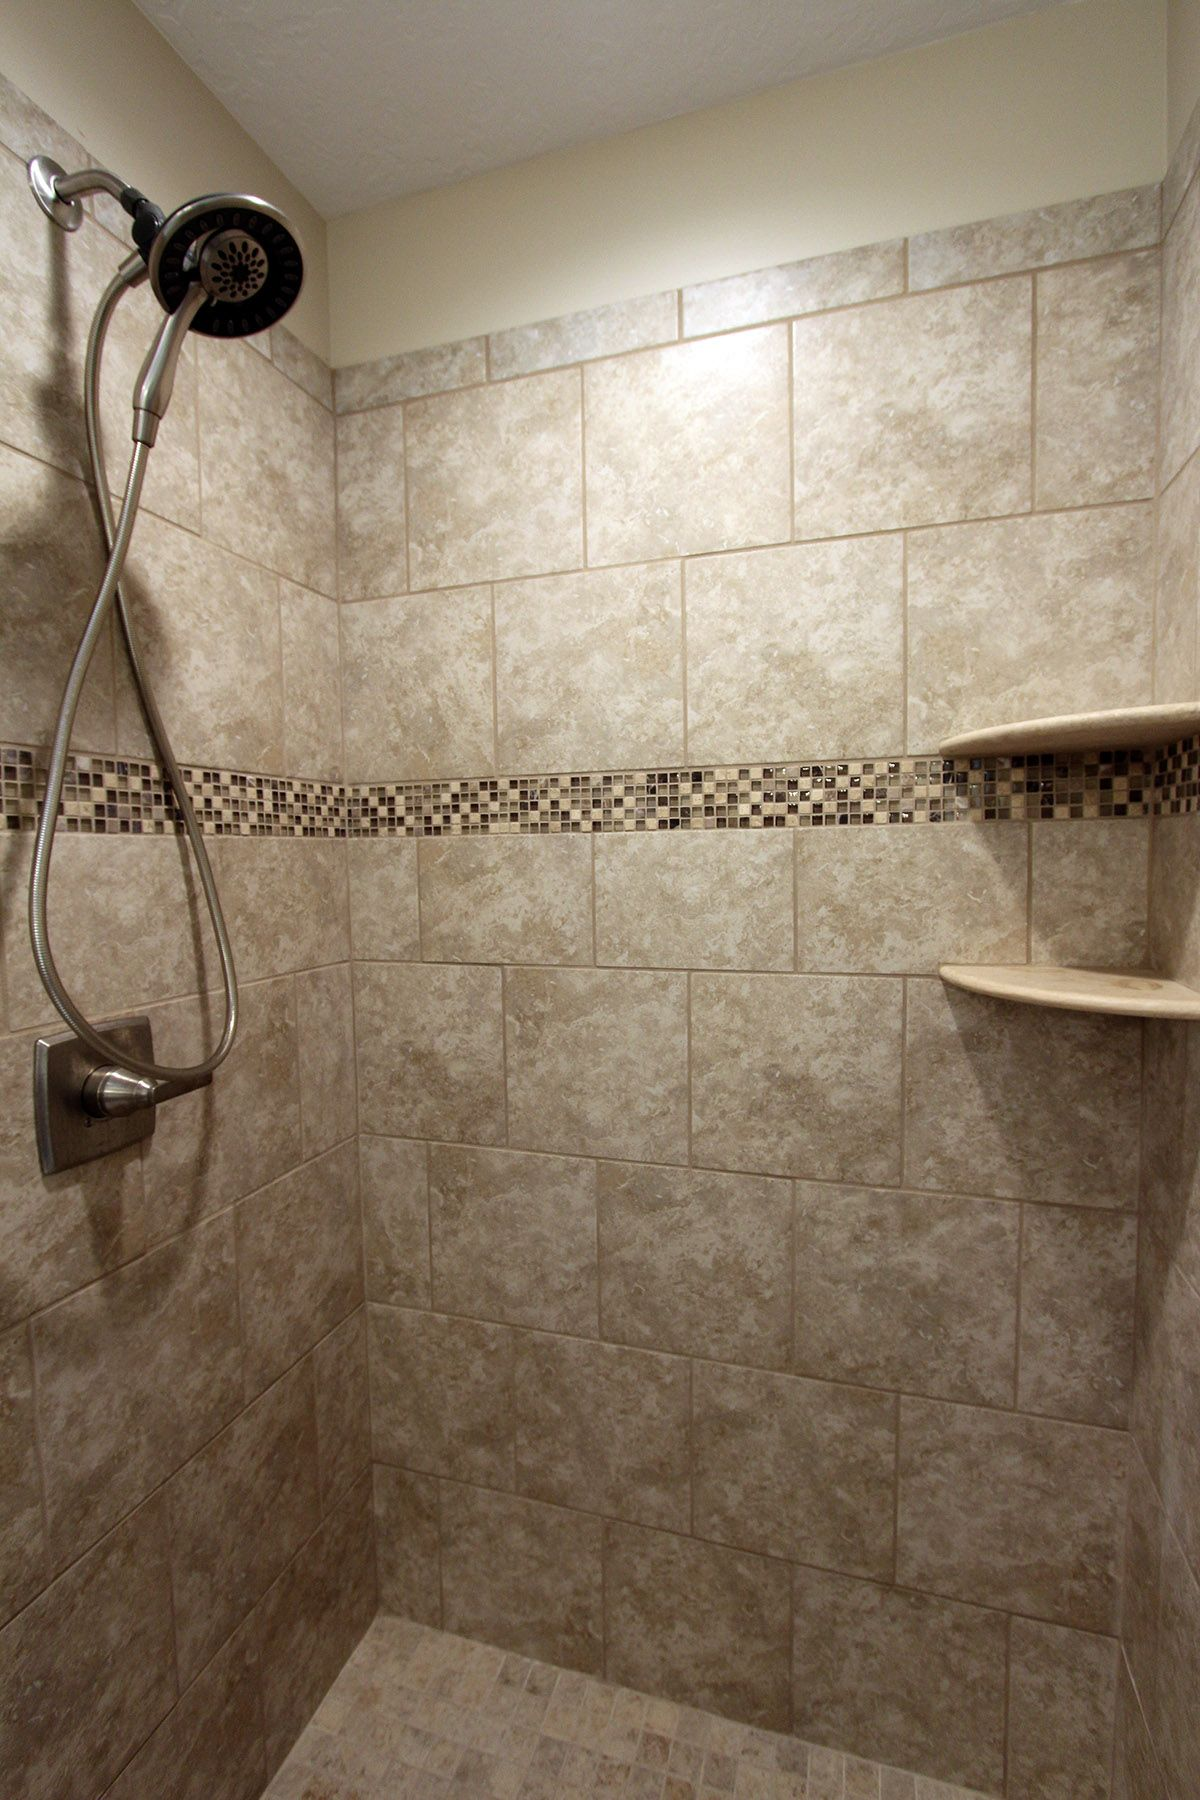 Tile Heathland White Rock 12x12 Sunrise Blend 2x2 Cappucino Mosaic Shower Floor Tile Shower Tile Rock Tile